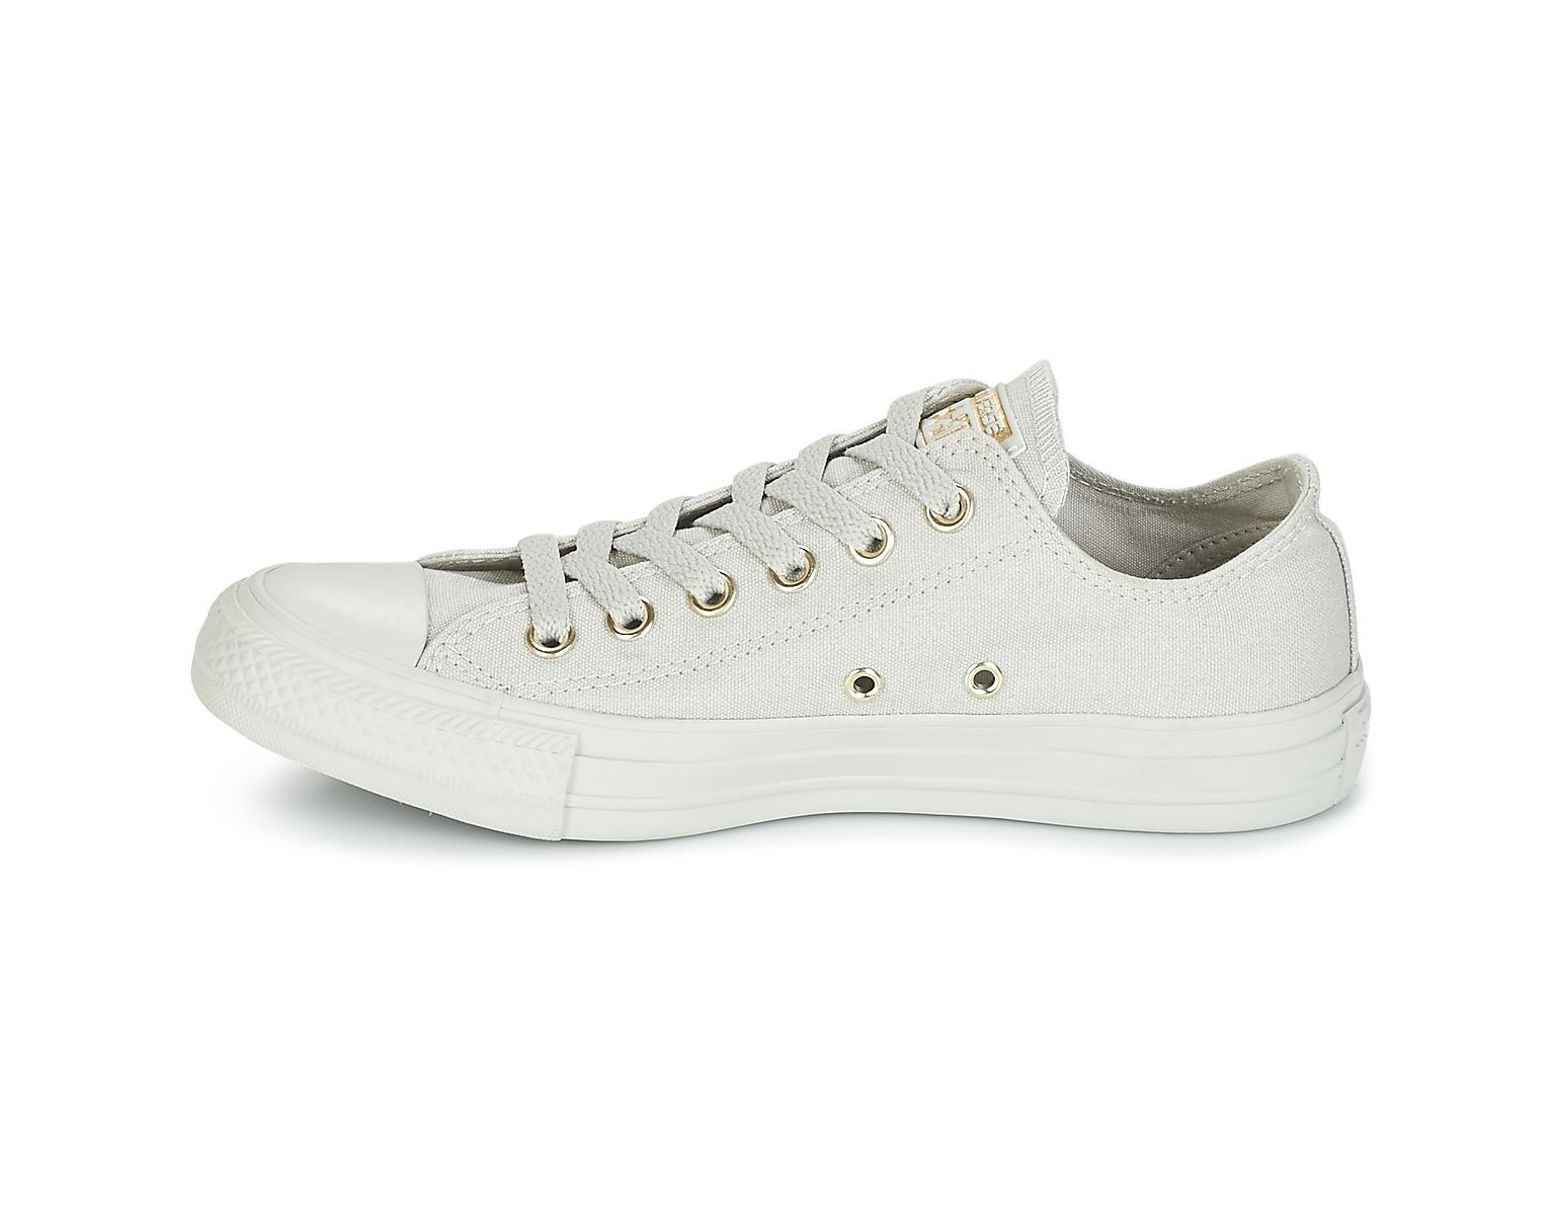 0eb3ee222829 Converse Chuck Taylor All Star Ox Mono Glam Canvas Color Shoes (trainers)  in Gray - Lyst